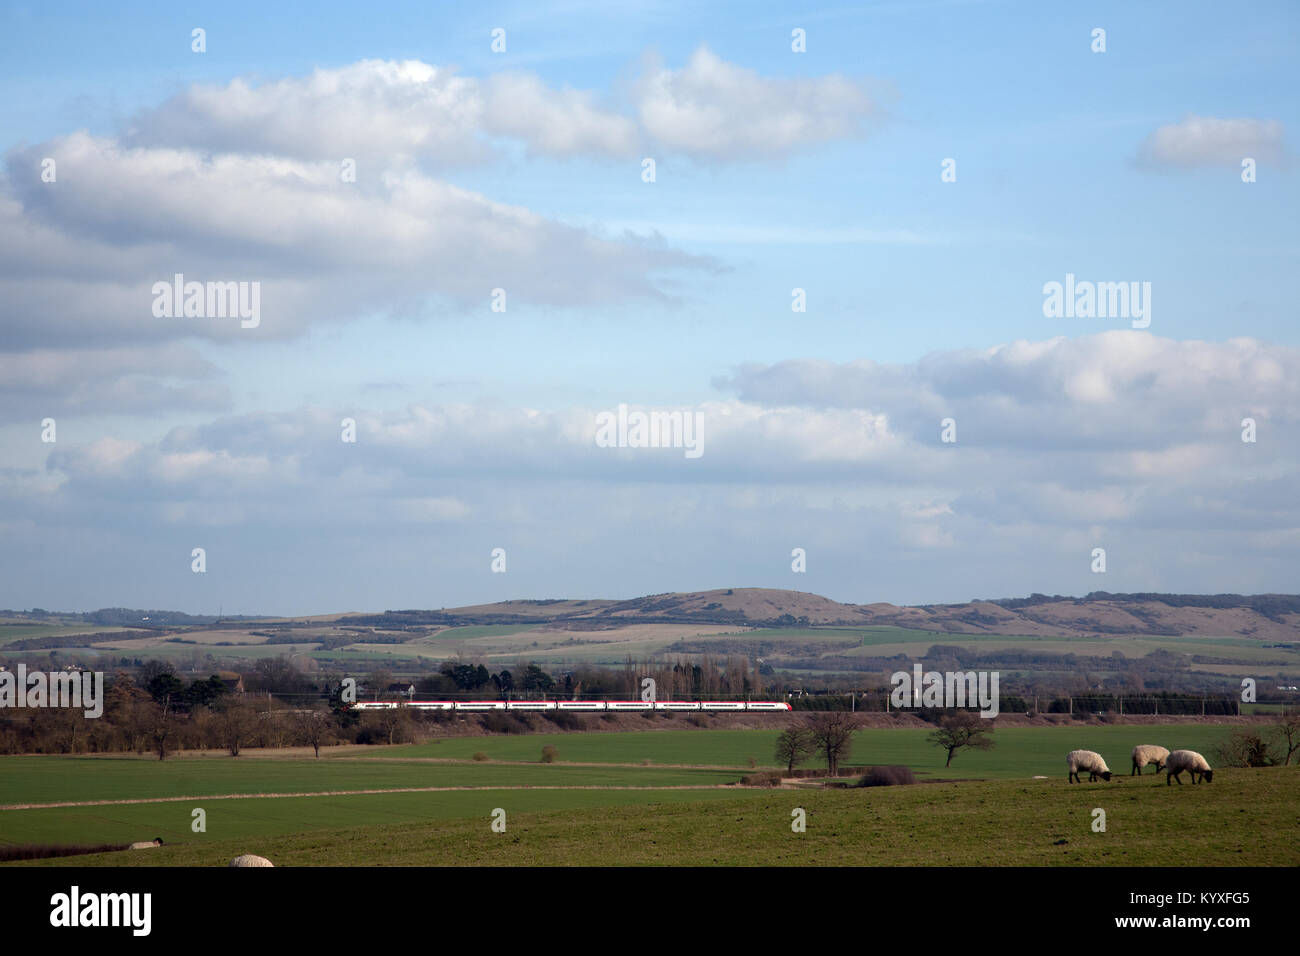 A Virgin Trains Class 390 Pendolino train passes in front of Ivinghoe Beacon with sheep in the foreground. Buckinghamshire, - Stock Image